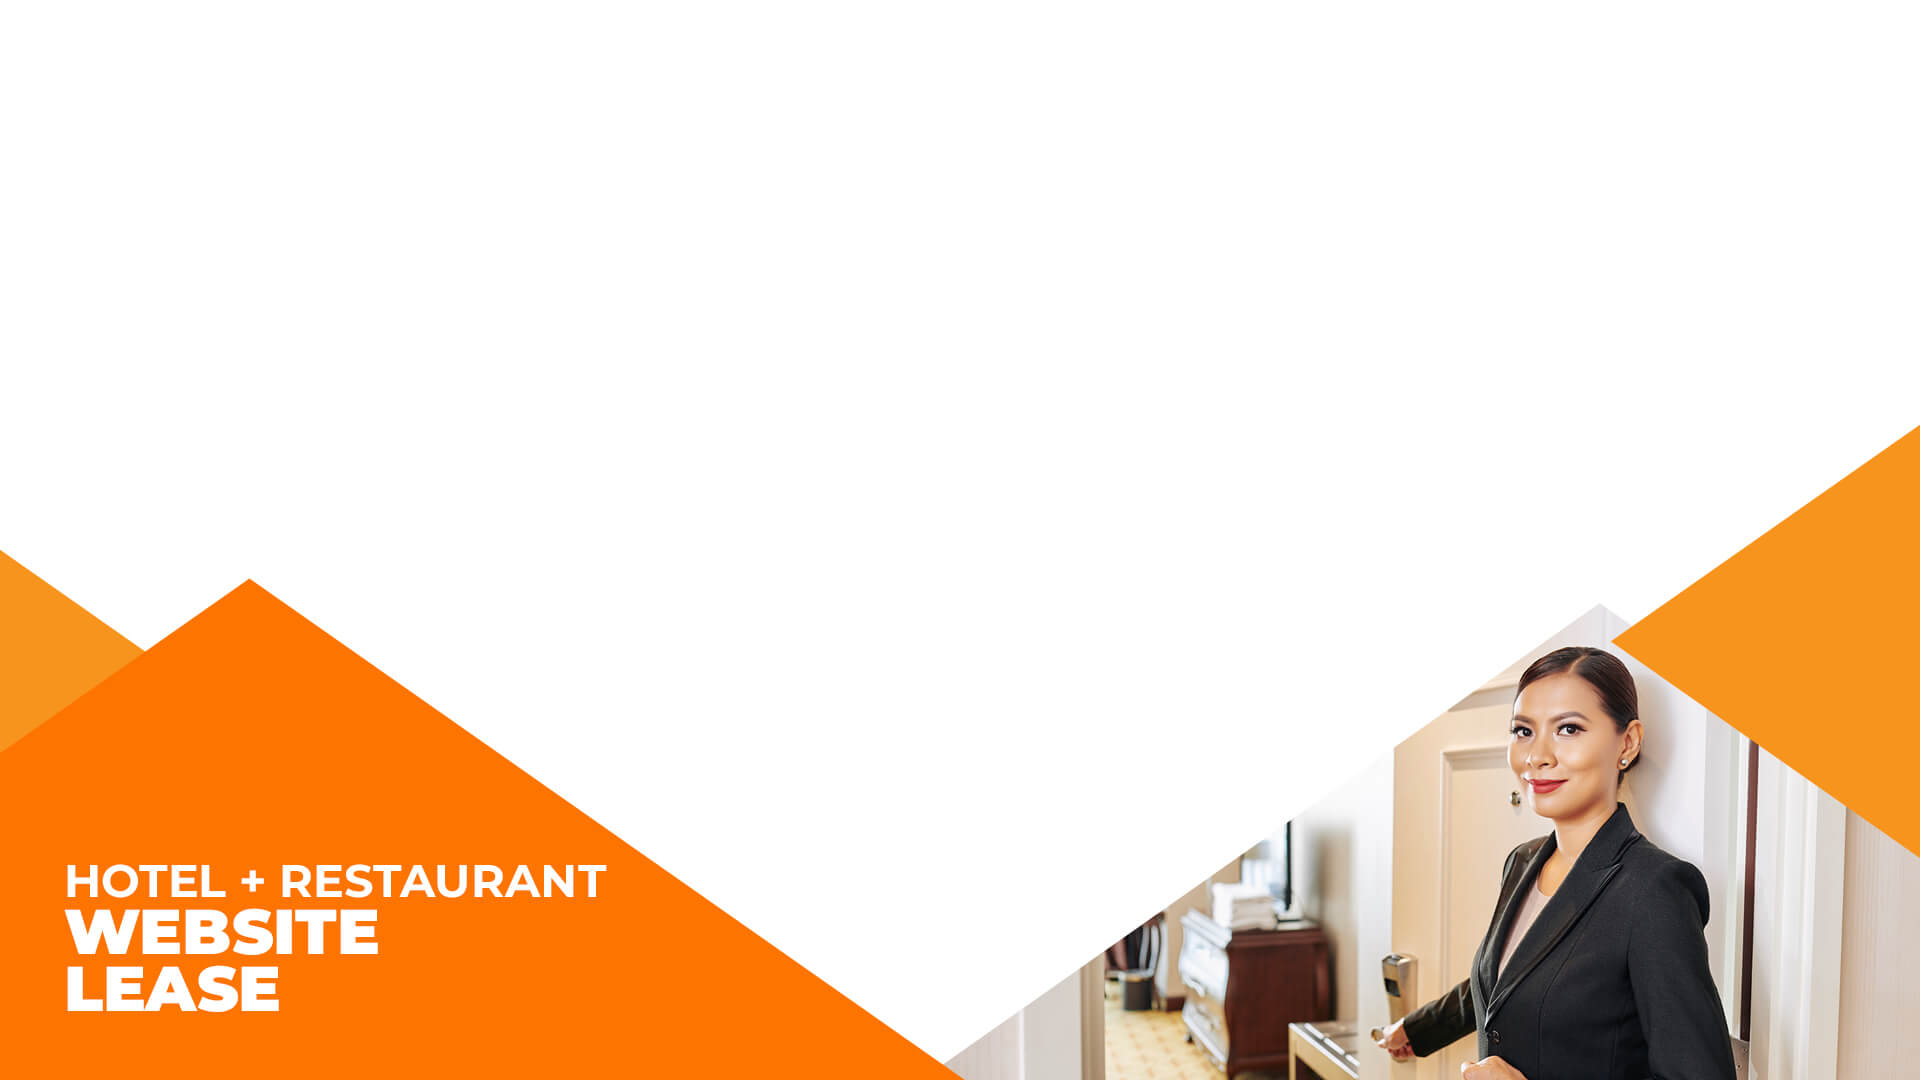 <div class='mh'><div class='mh-sub'>Hotel and Restaurant</div>Website Lease</div>We take care of your complete internet presentation, while you run your <b>hotel and restaurant</b>.